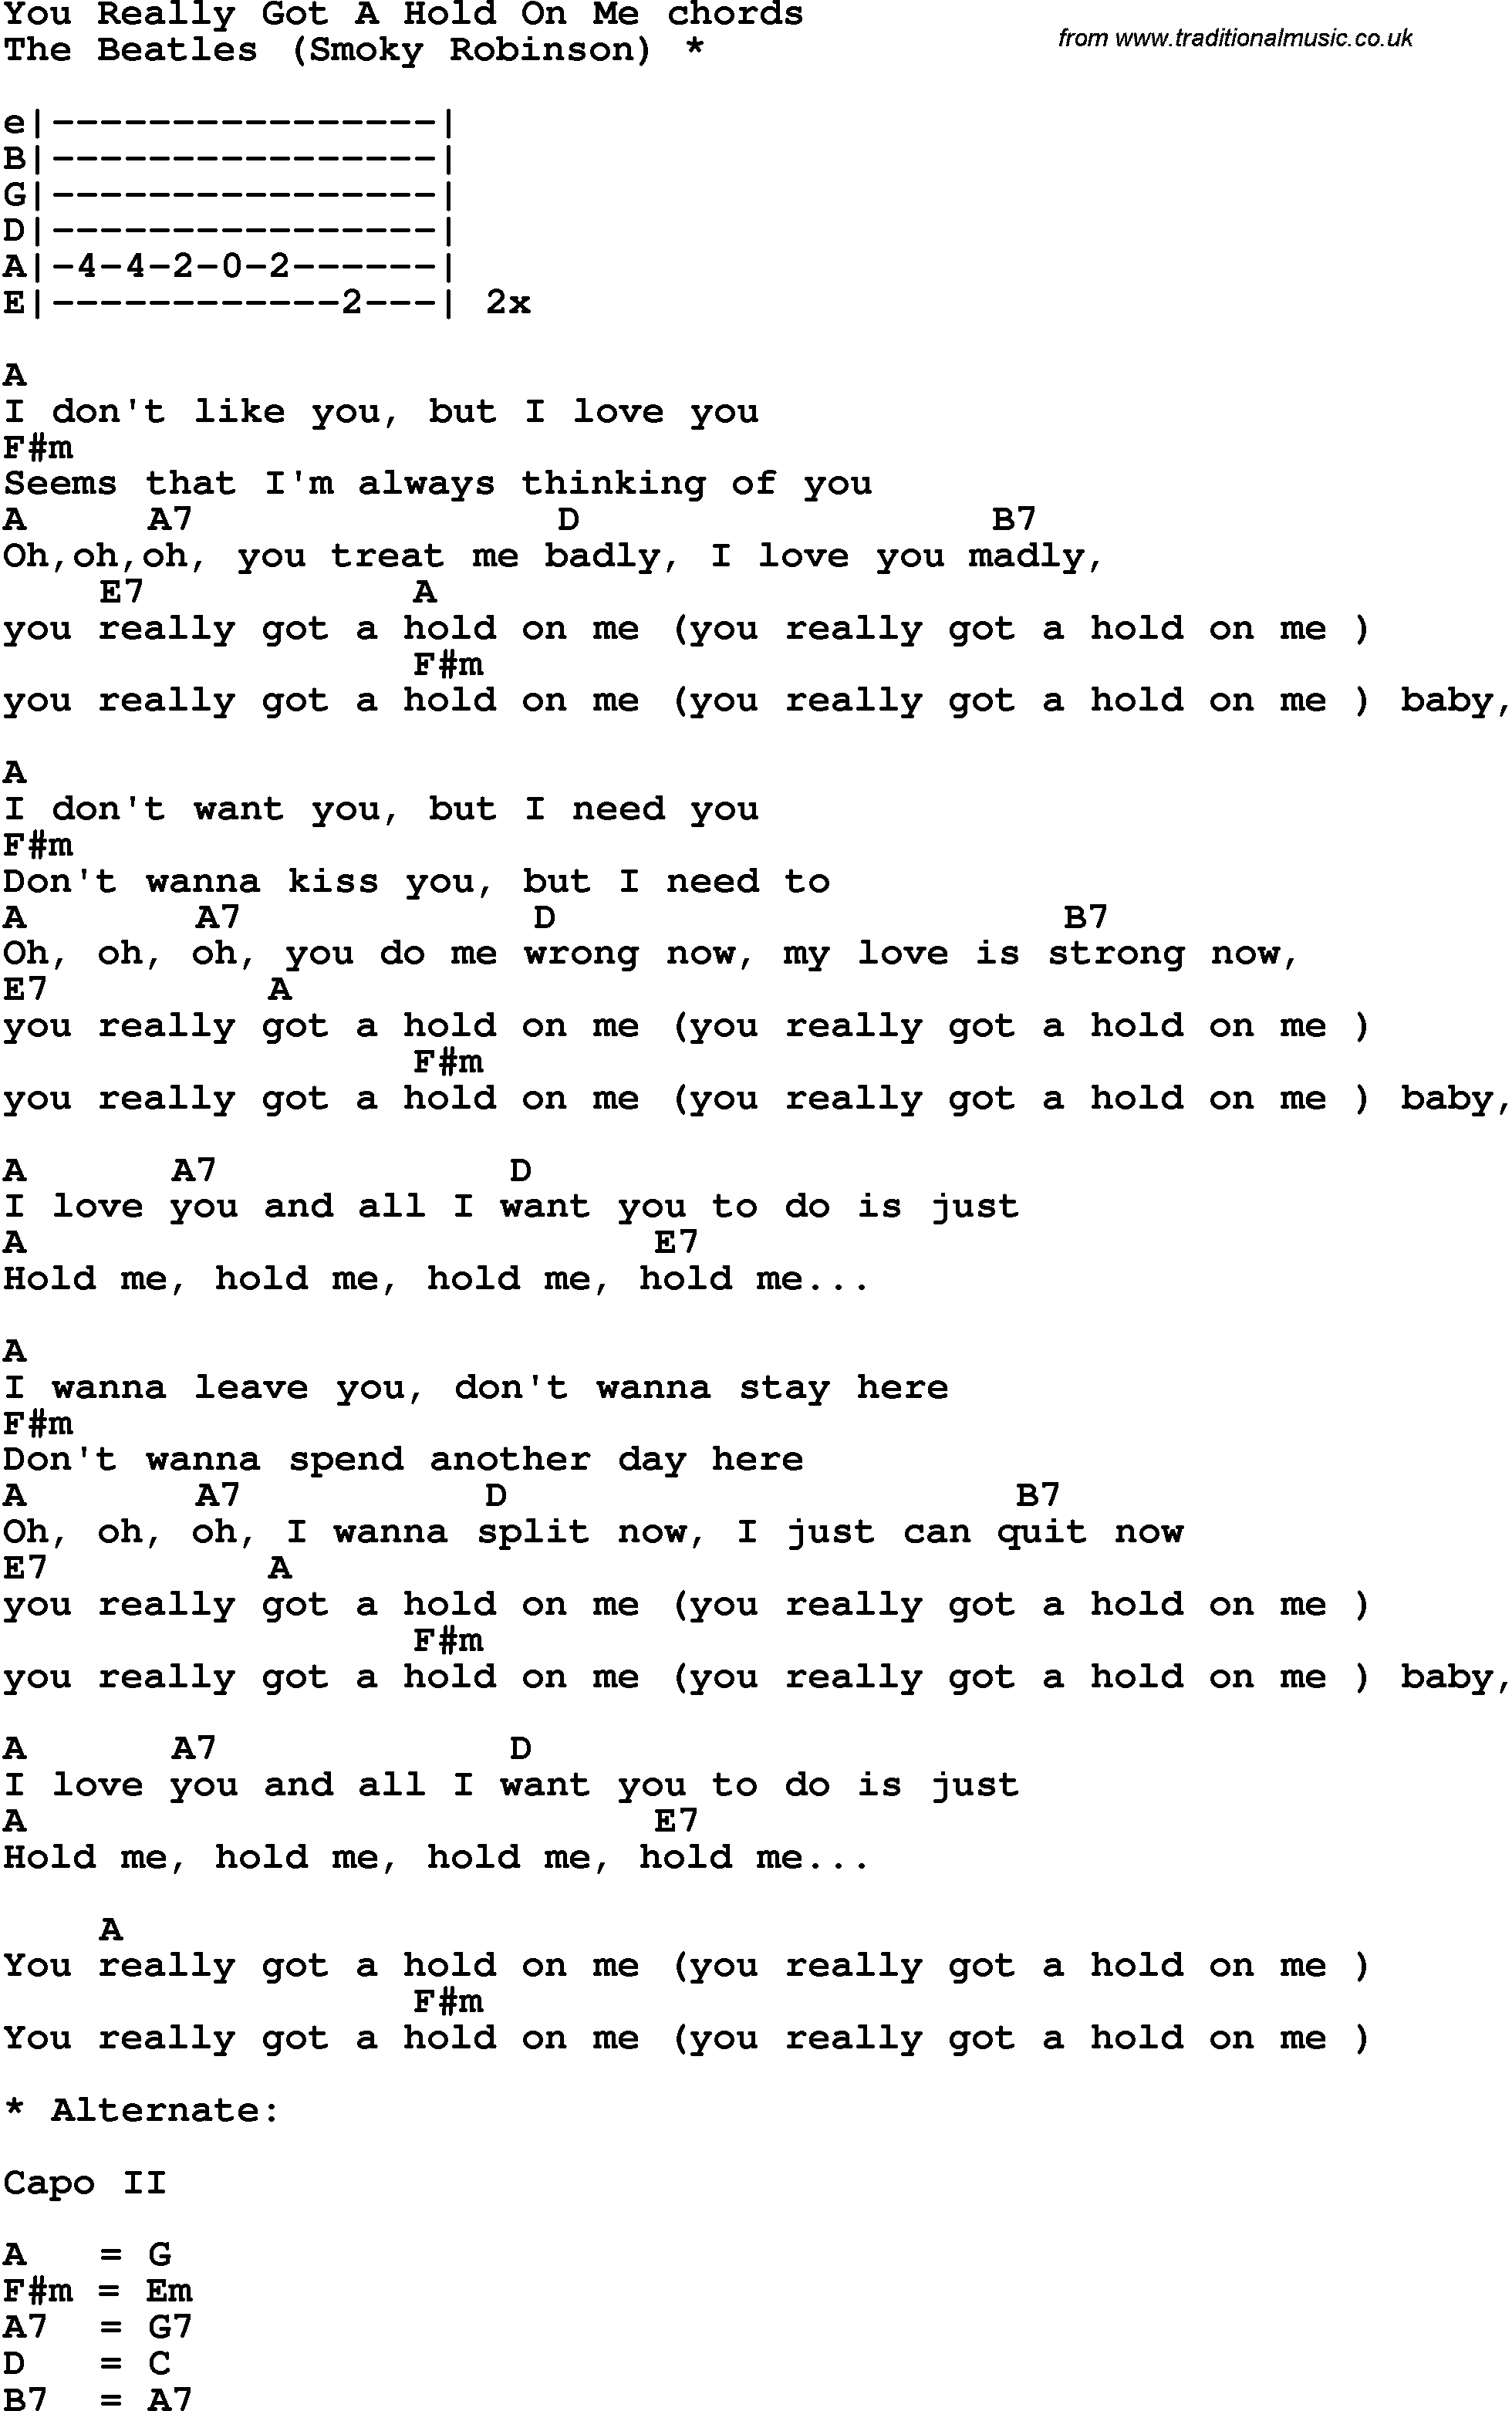 Song lyrics with guitar chords for you really got a hold on me song lyrics with guitar chords for you really got a hold on me the beatles hexwebz Images